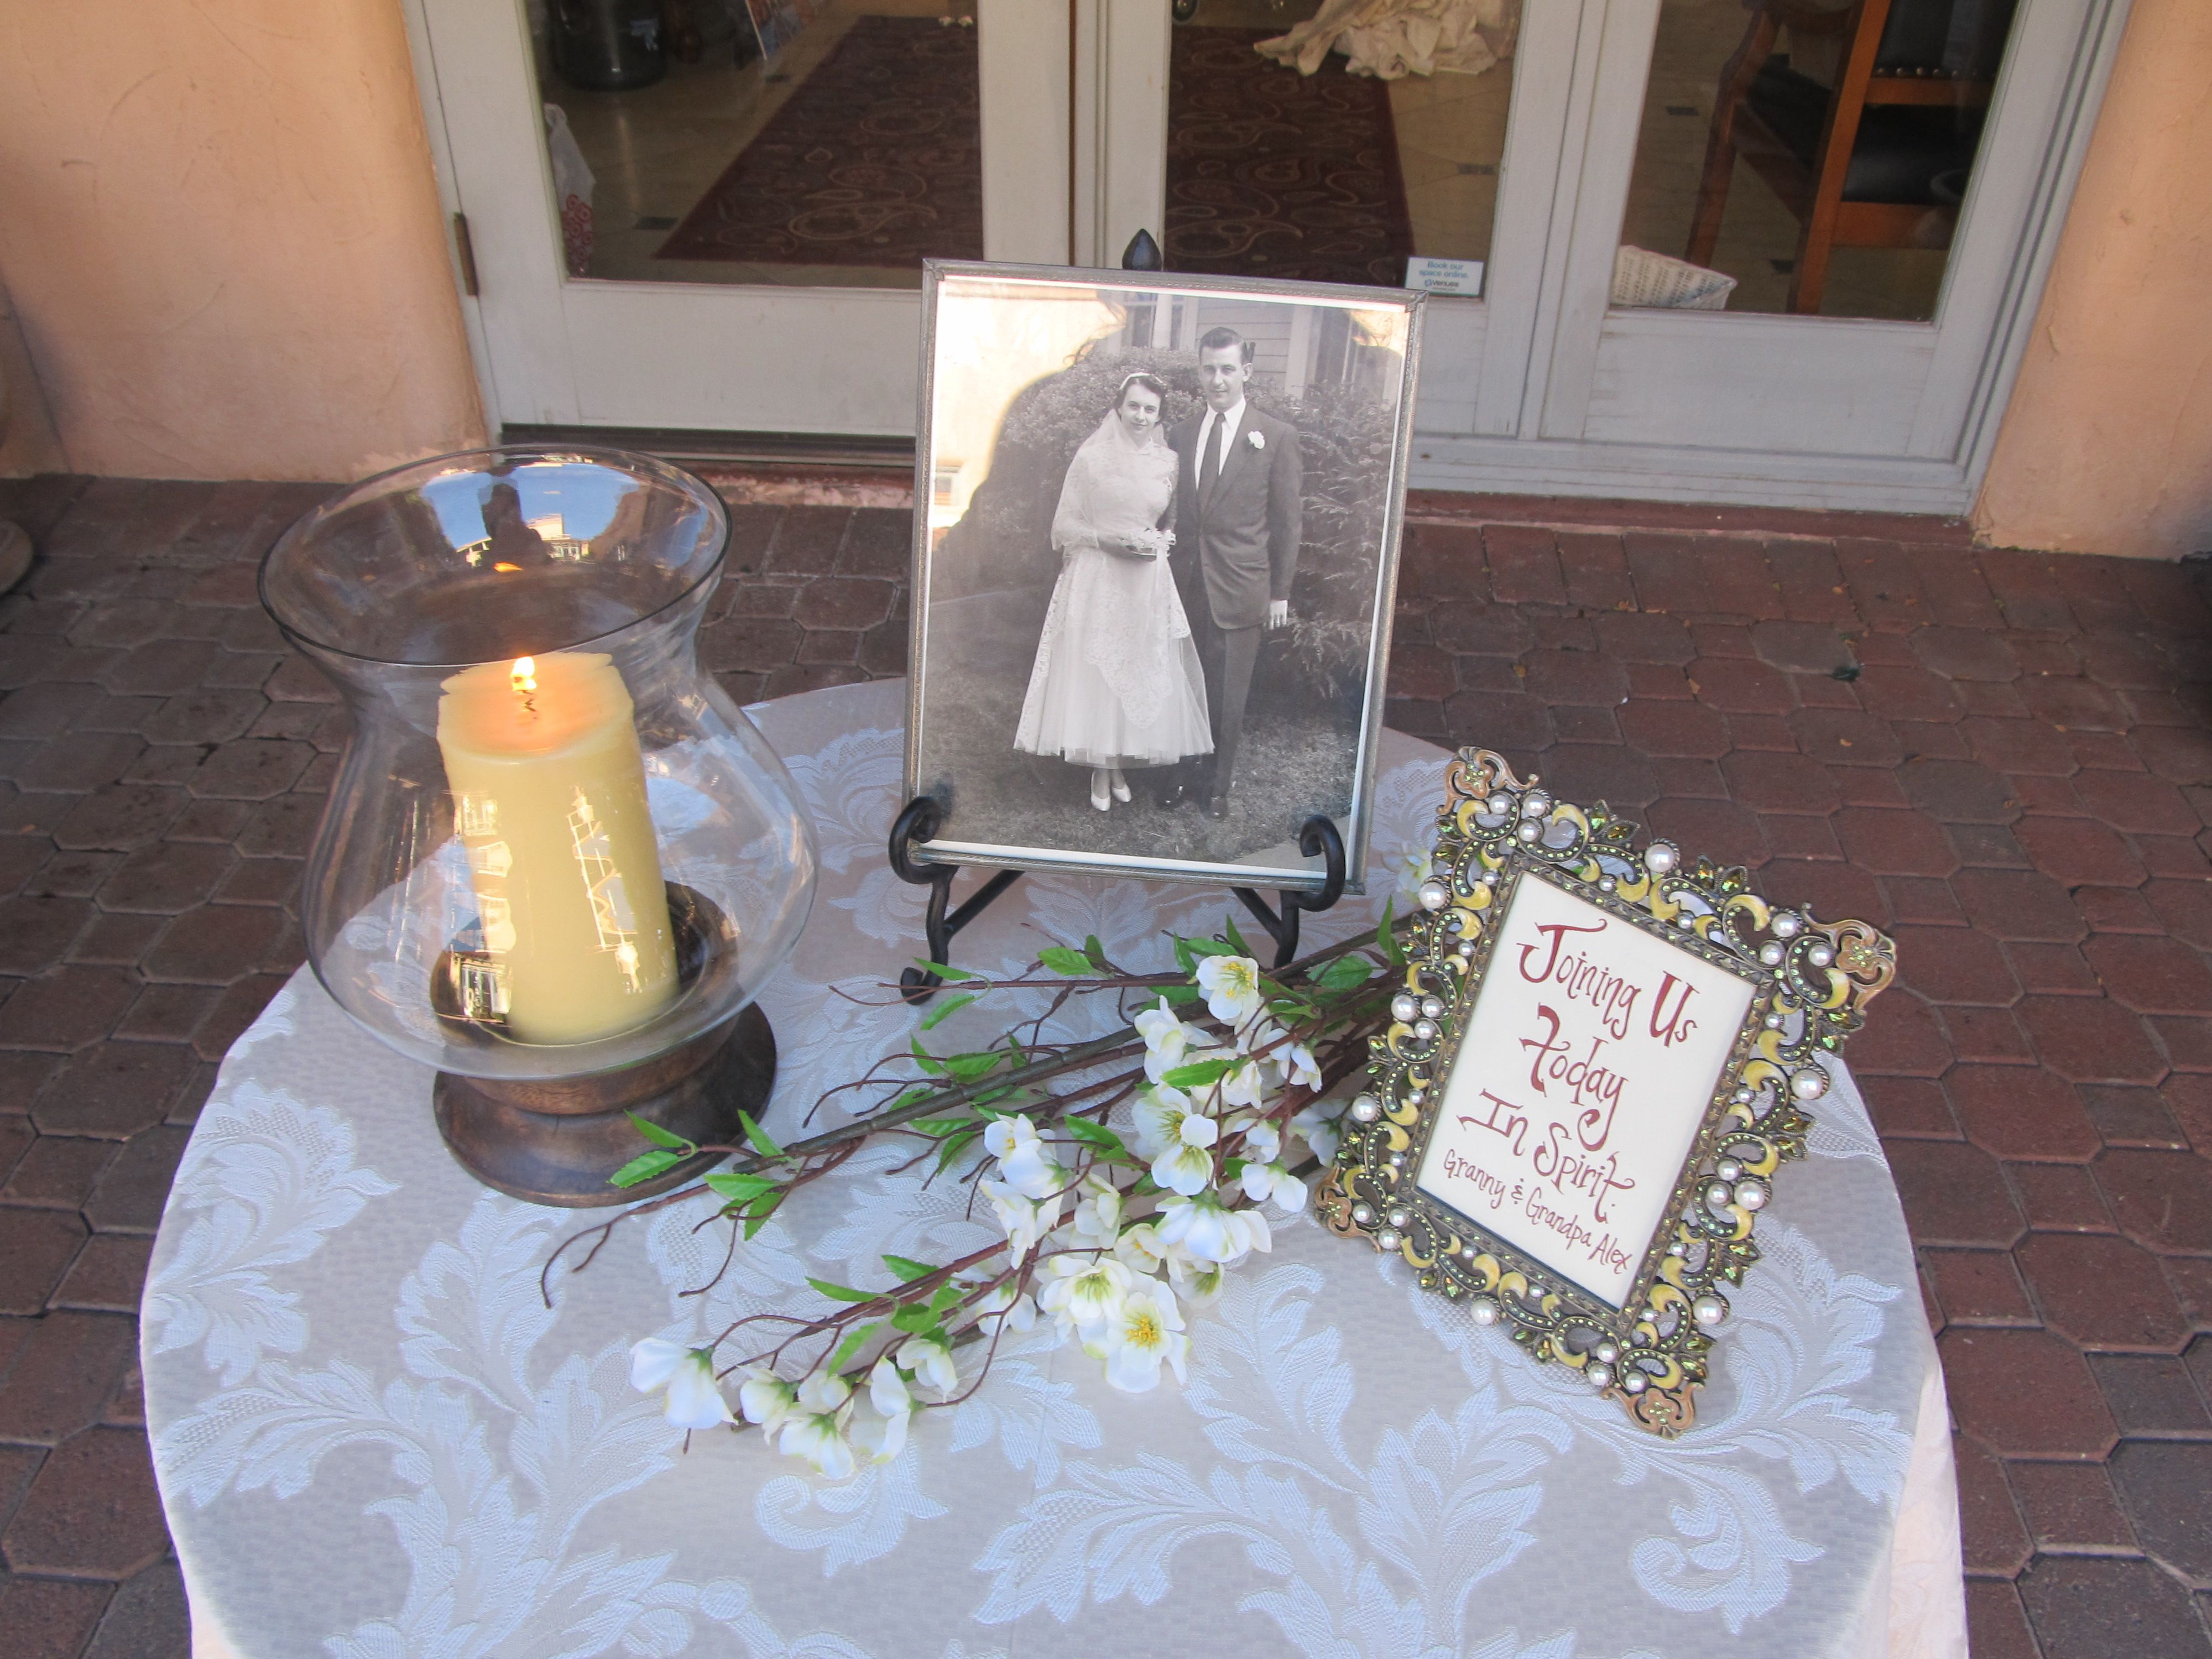 What Tables Do You Need At A Wedding: Memorial Table At Aldea Weddings--classy But We Will Need